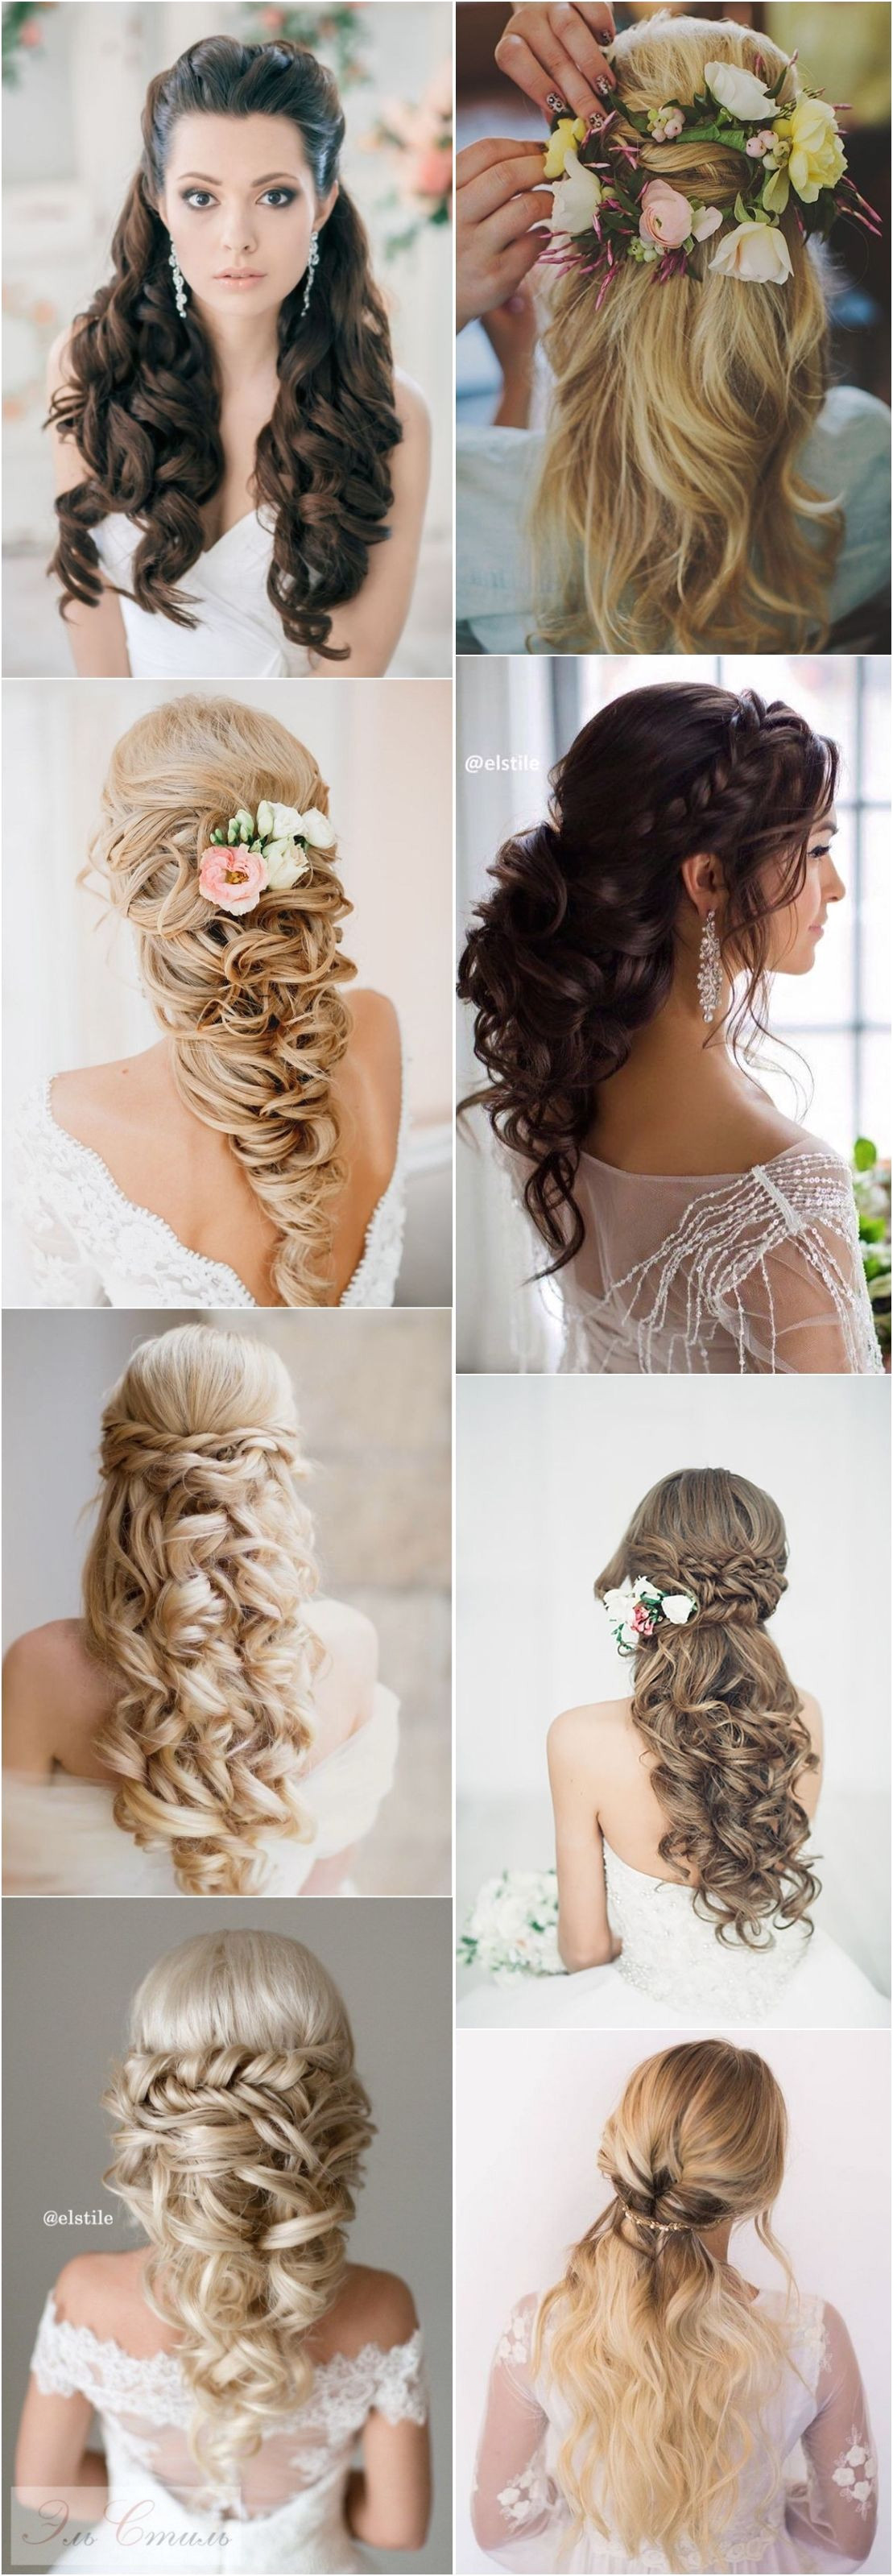 50 Stunning Half Up Half Down Wedding Hairstyles wedding hairstyle bride